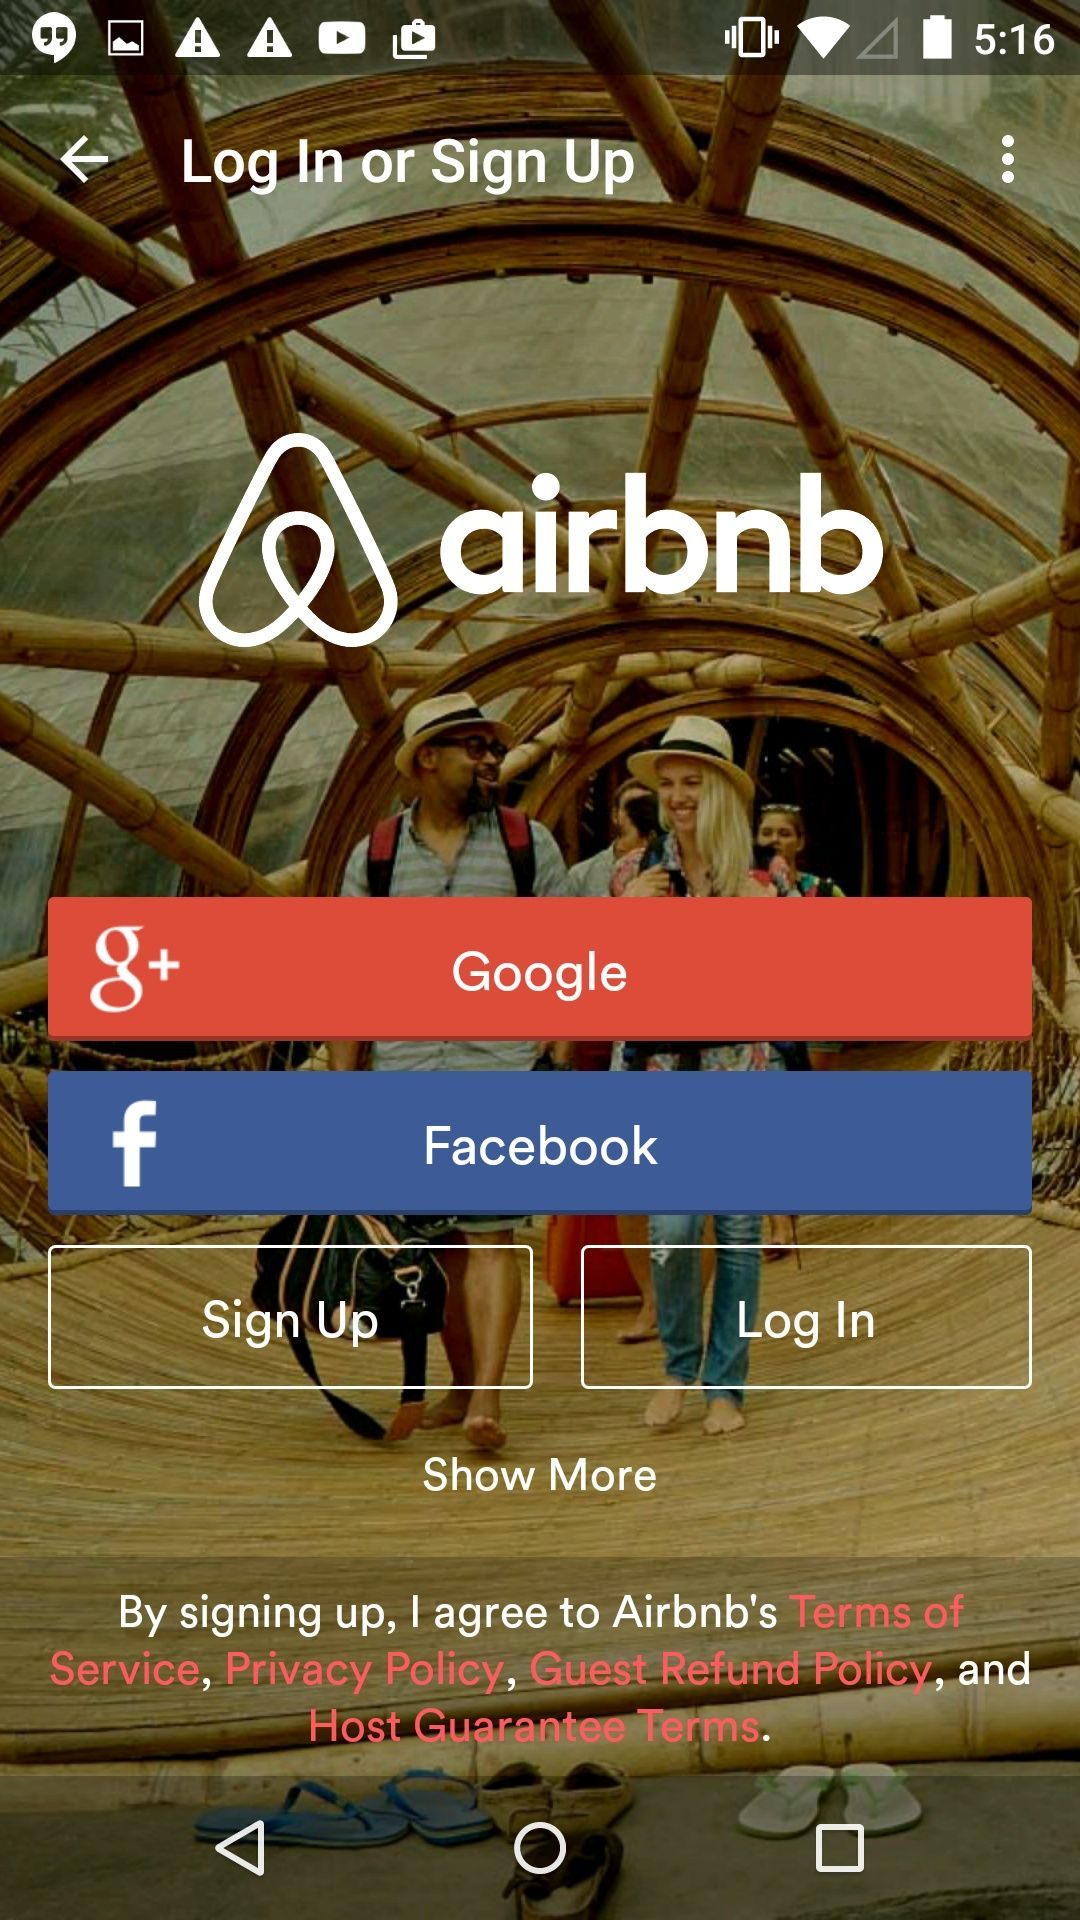 Poster design app android - Airbnb Sign Up And Log In Pretty Obvious The Choices You Can Make Here Along With All The Necessary Legal Fun At The Bottom Android Forms Pinterest